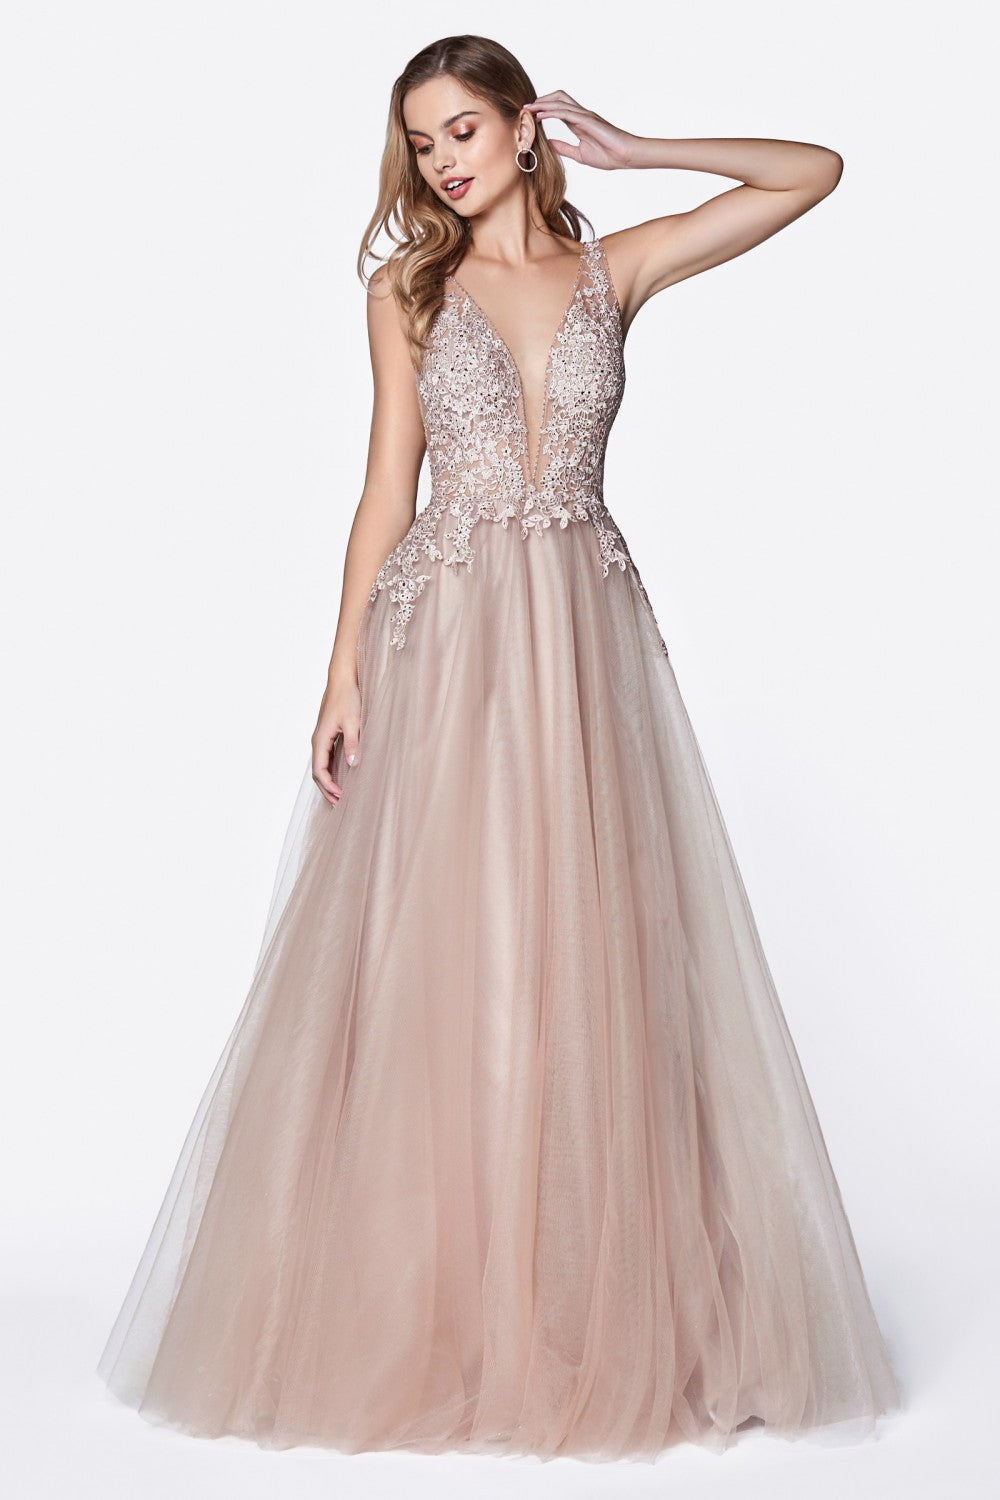 Tulle A-Line Gown With Deep Plunge And Jewled Lace Detials